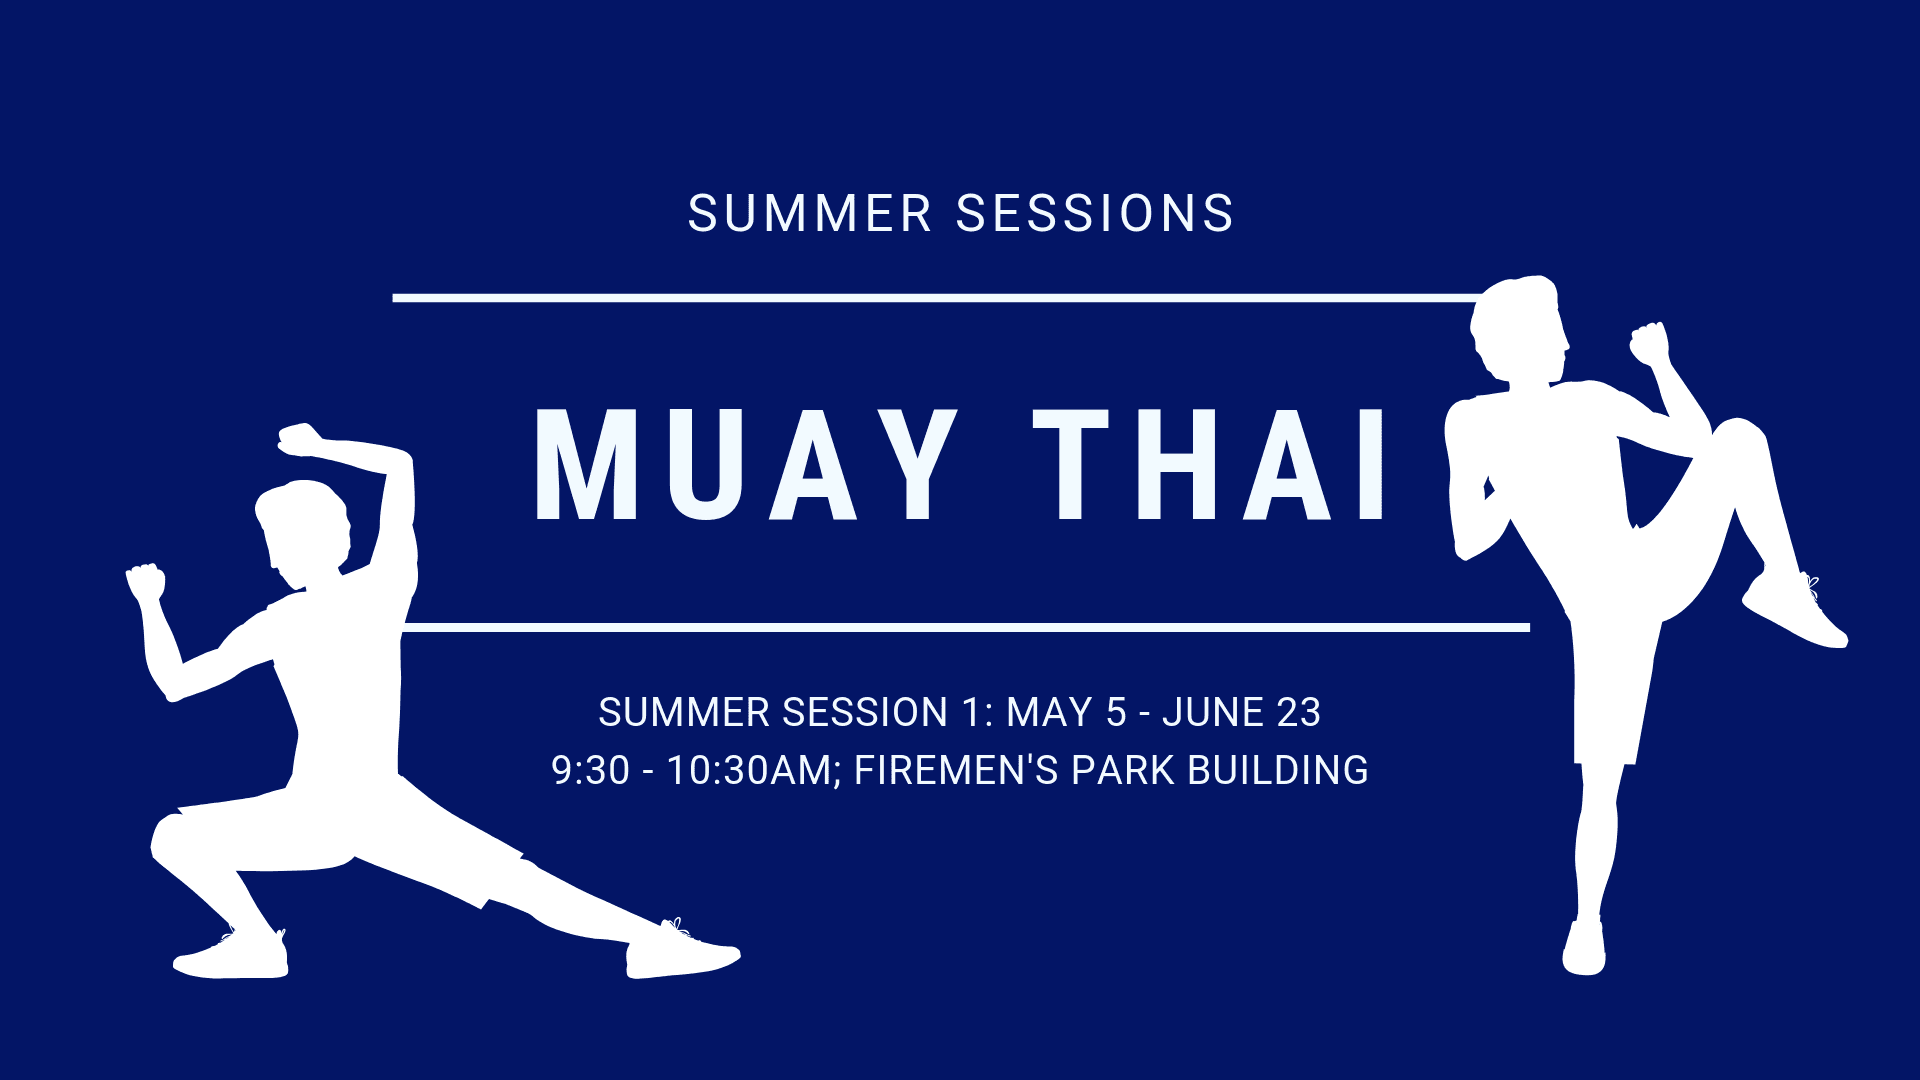 Muay Thai Summer 2019 Session 3